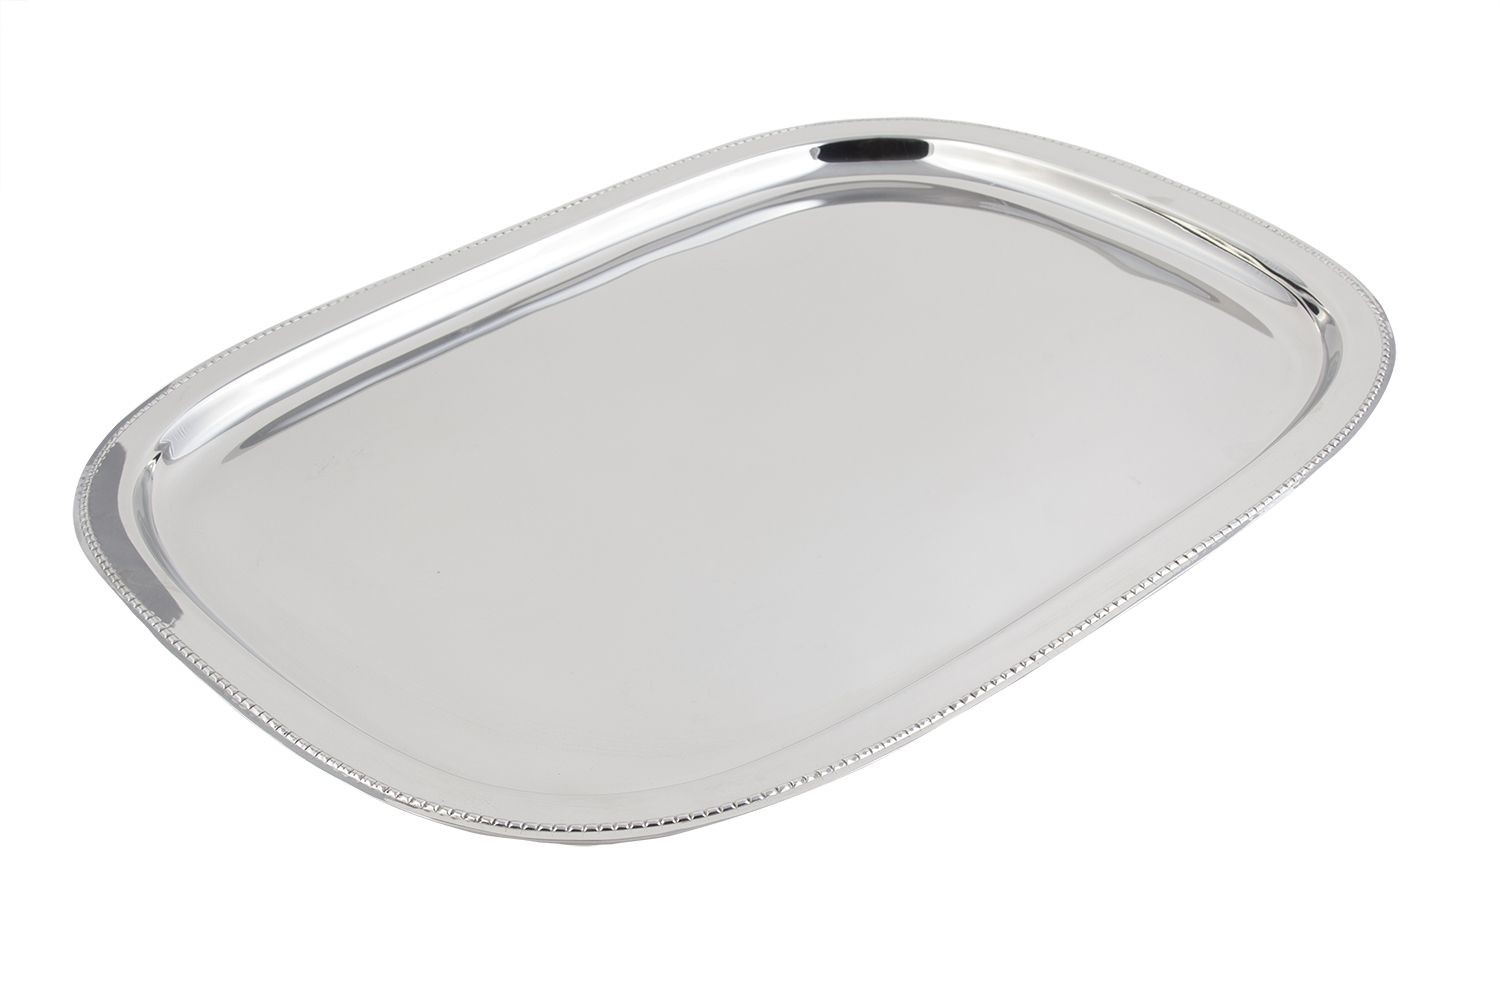 "Bon Chef 61350 Stainless Steel Oblong Tray, 15 3/4"" x 21 1/2"""